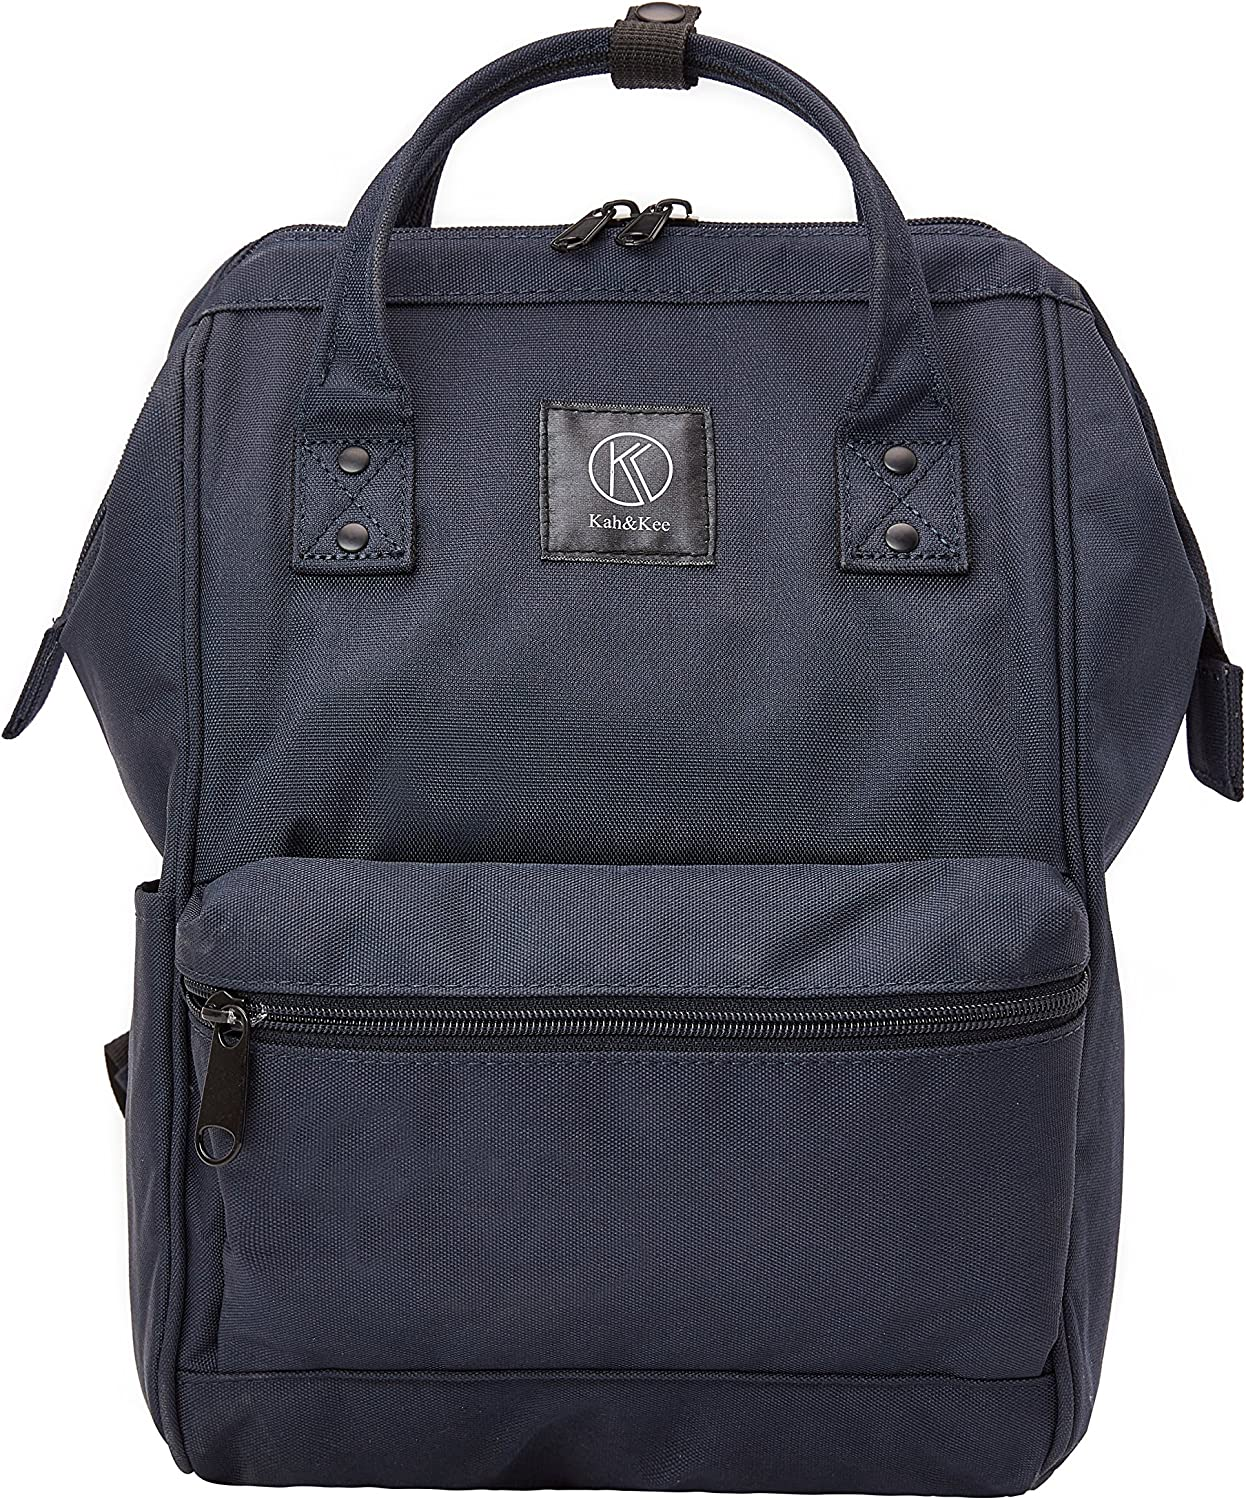 Kah&Kee Polyester Travel Backpack Functional Anti-theft School Laptop for Women Men (Navy, Small)